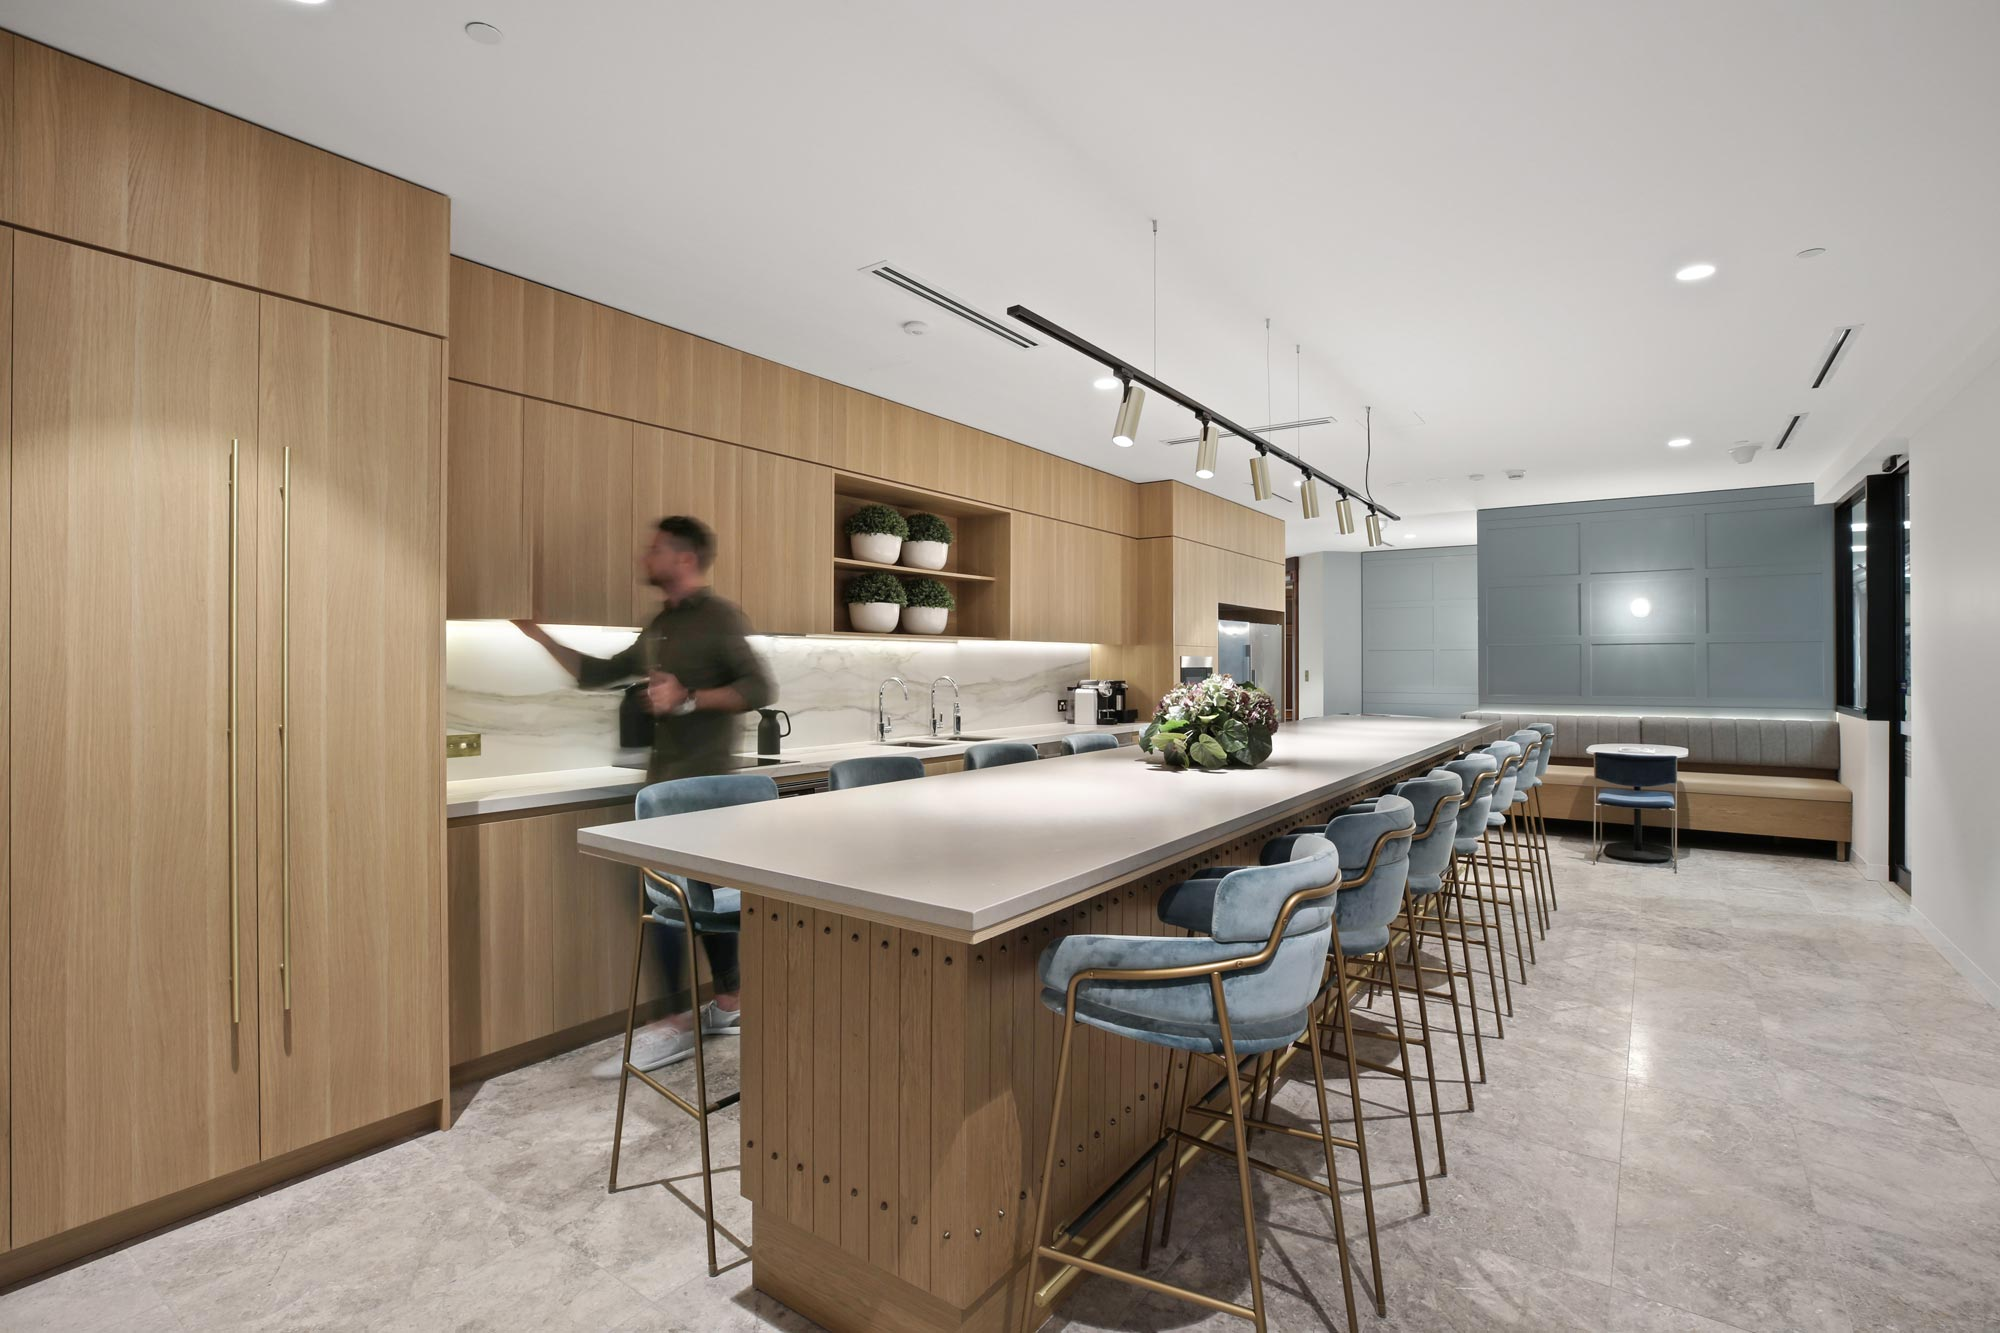 Valmont kkr 1 macquarie square high kitchen 2